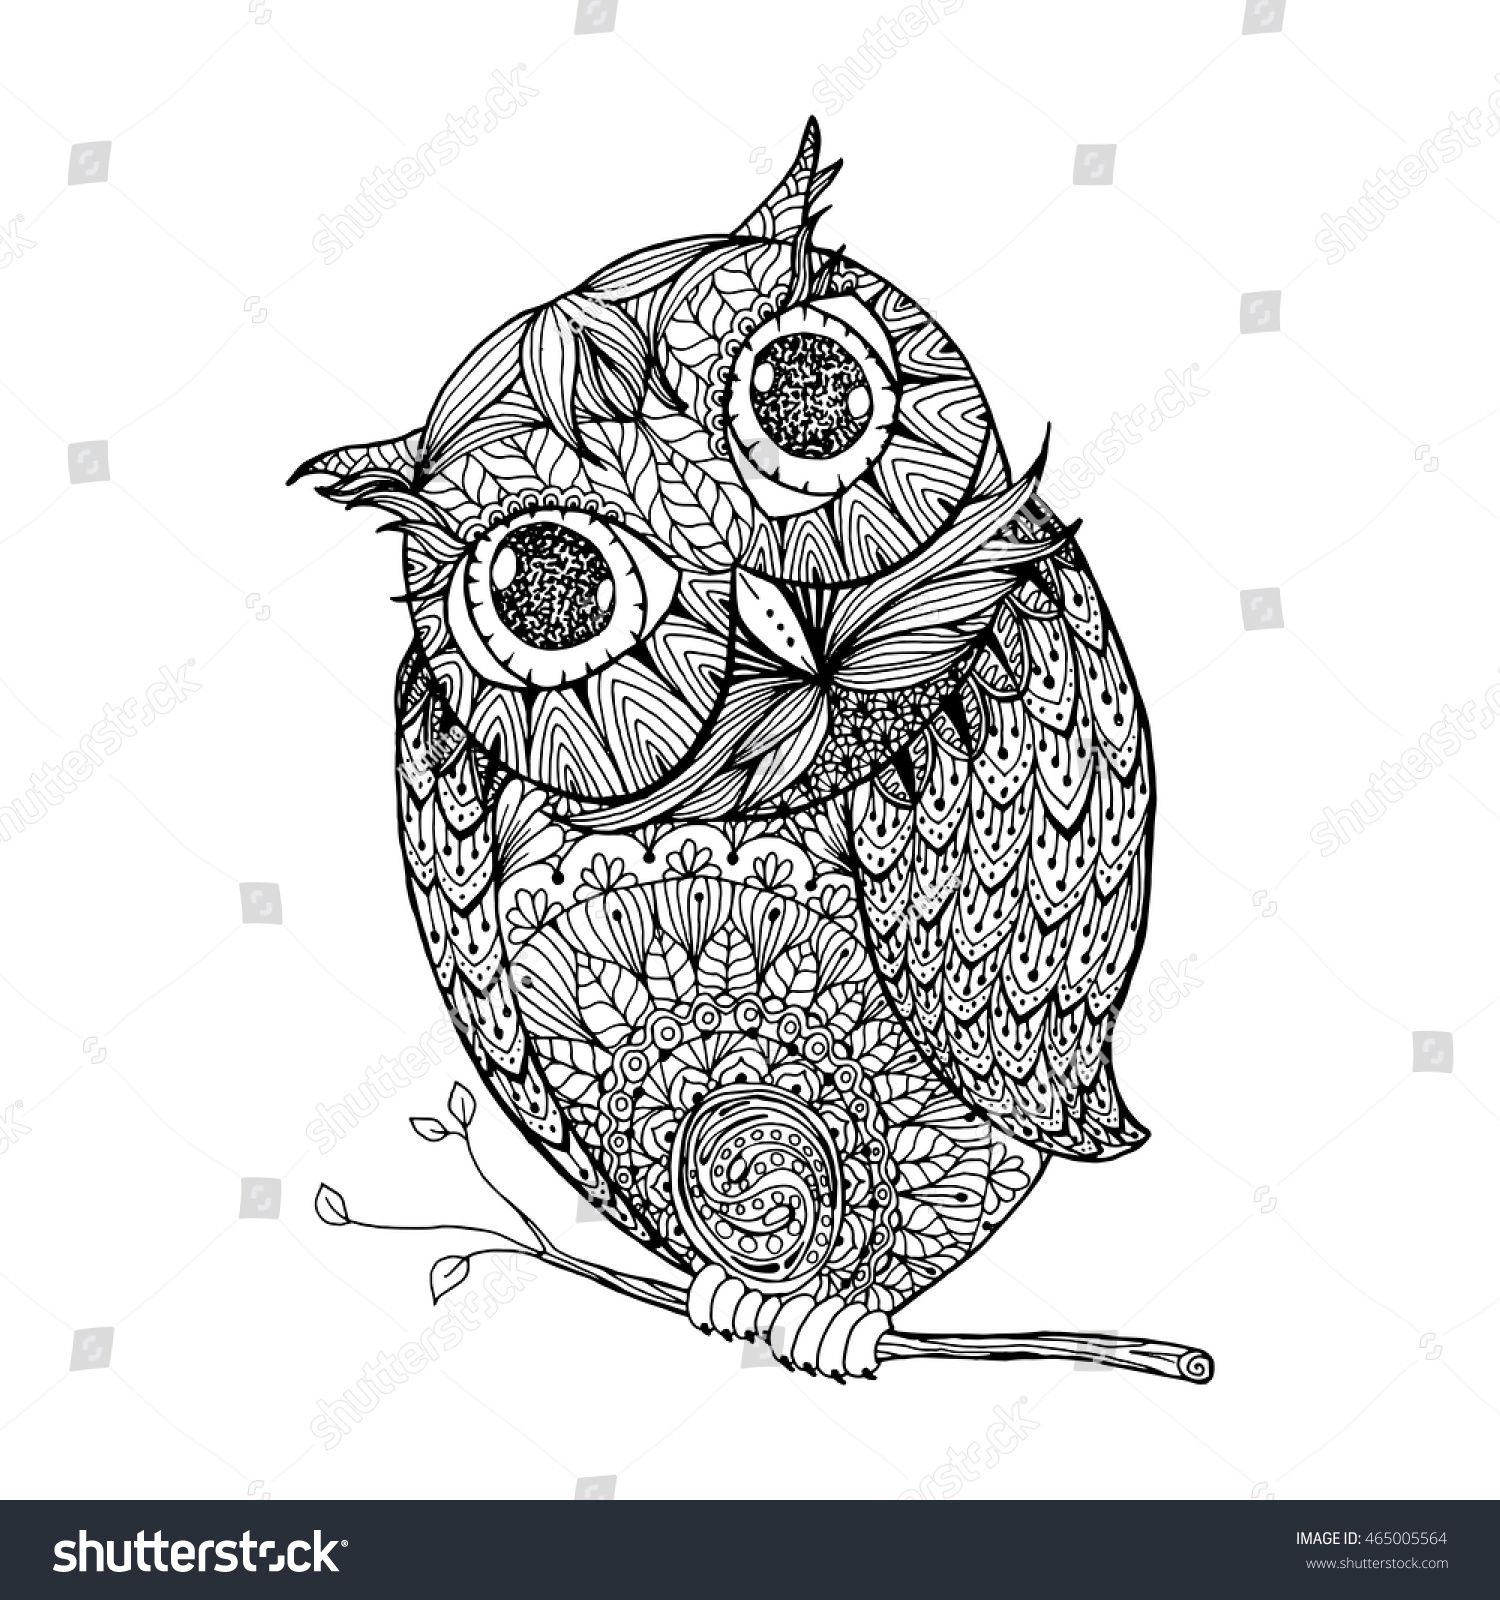 Zentangle style owl Isolated illustration with ornanets fill for adult coloring book page design antistress ink drawing